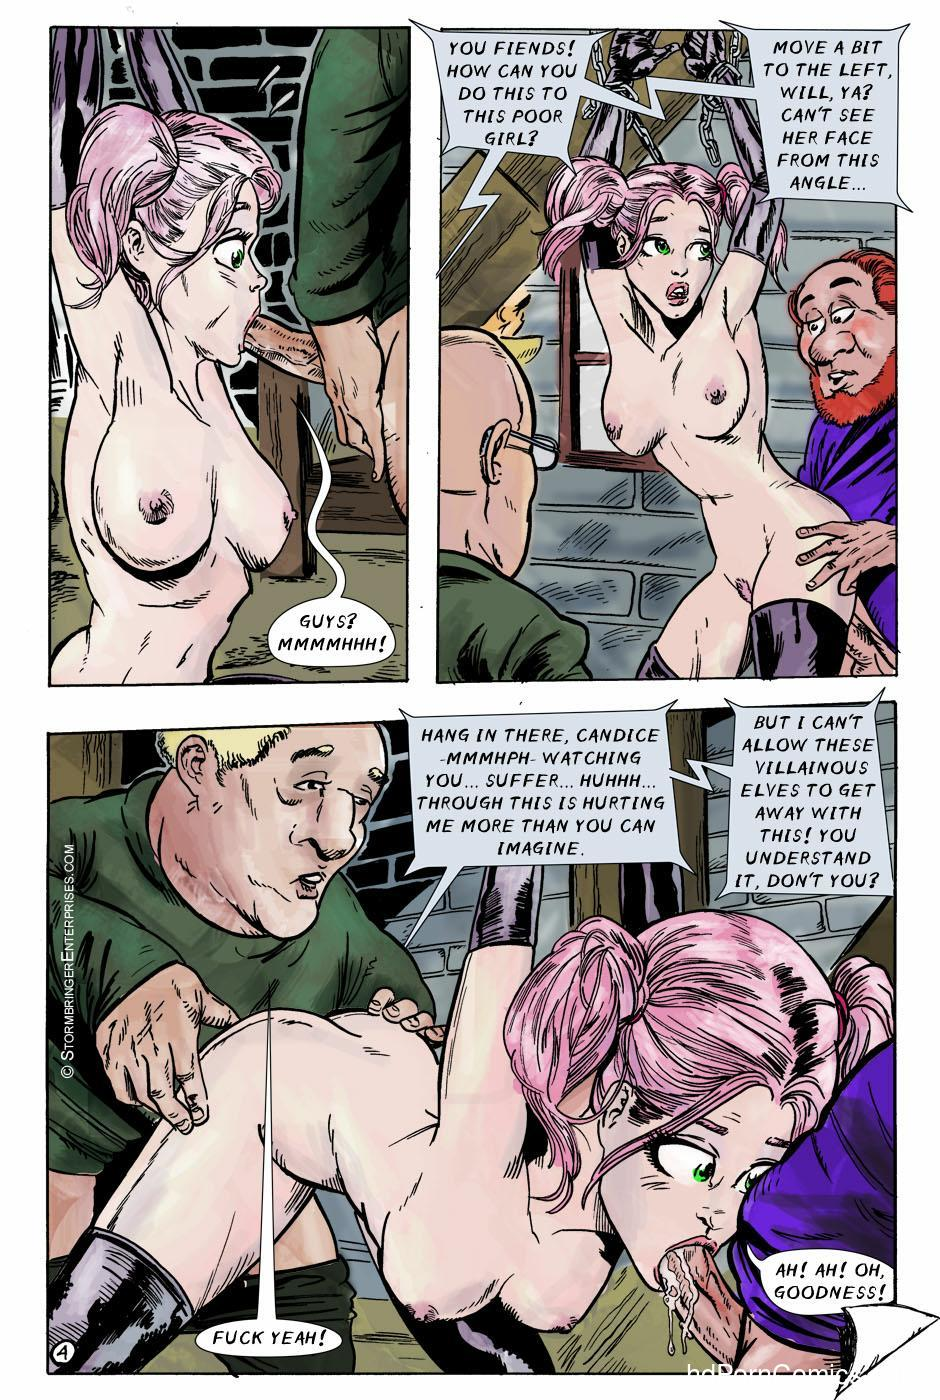 Erotic Adventures of Candice 01-18113 free sex comic